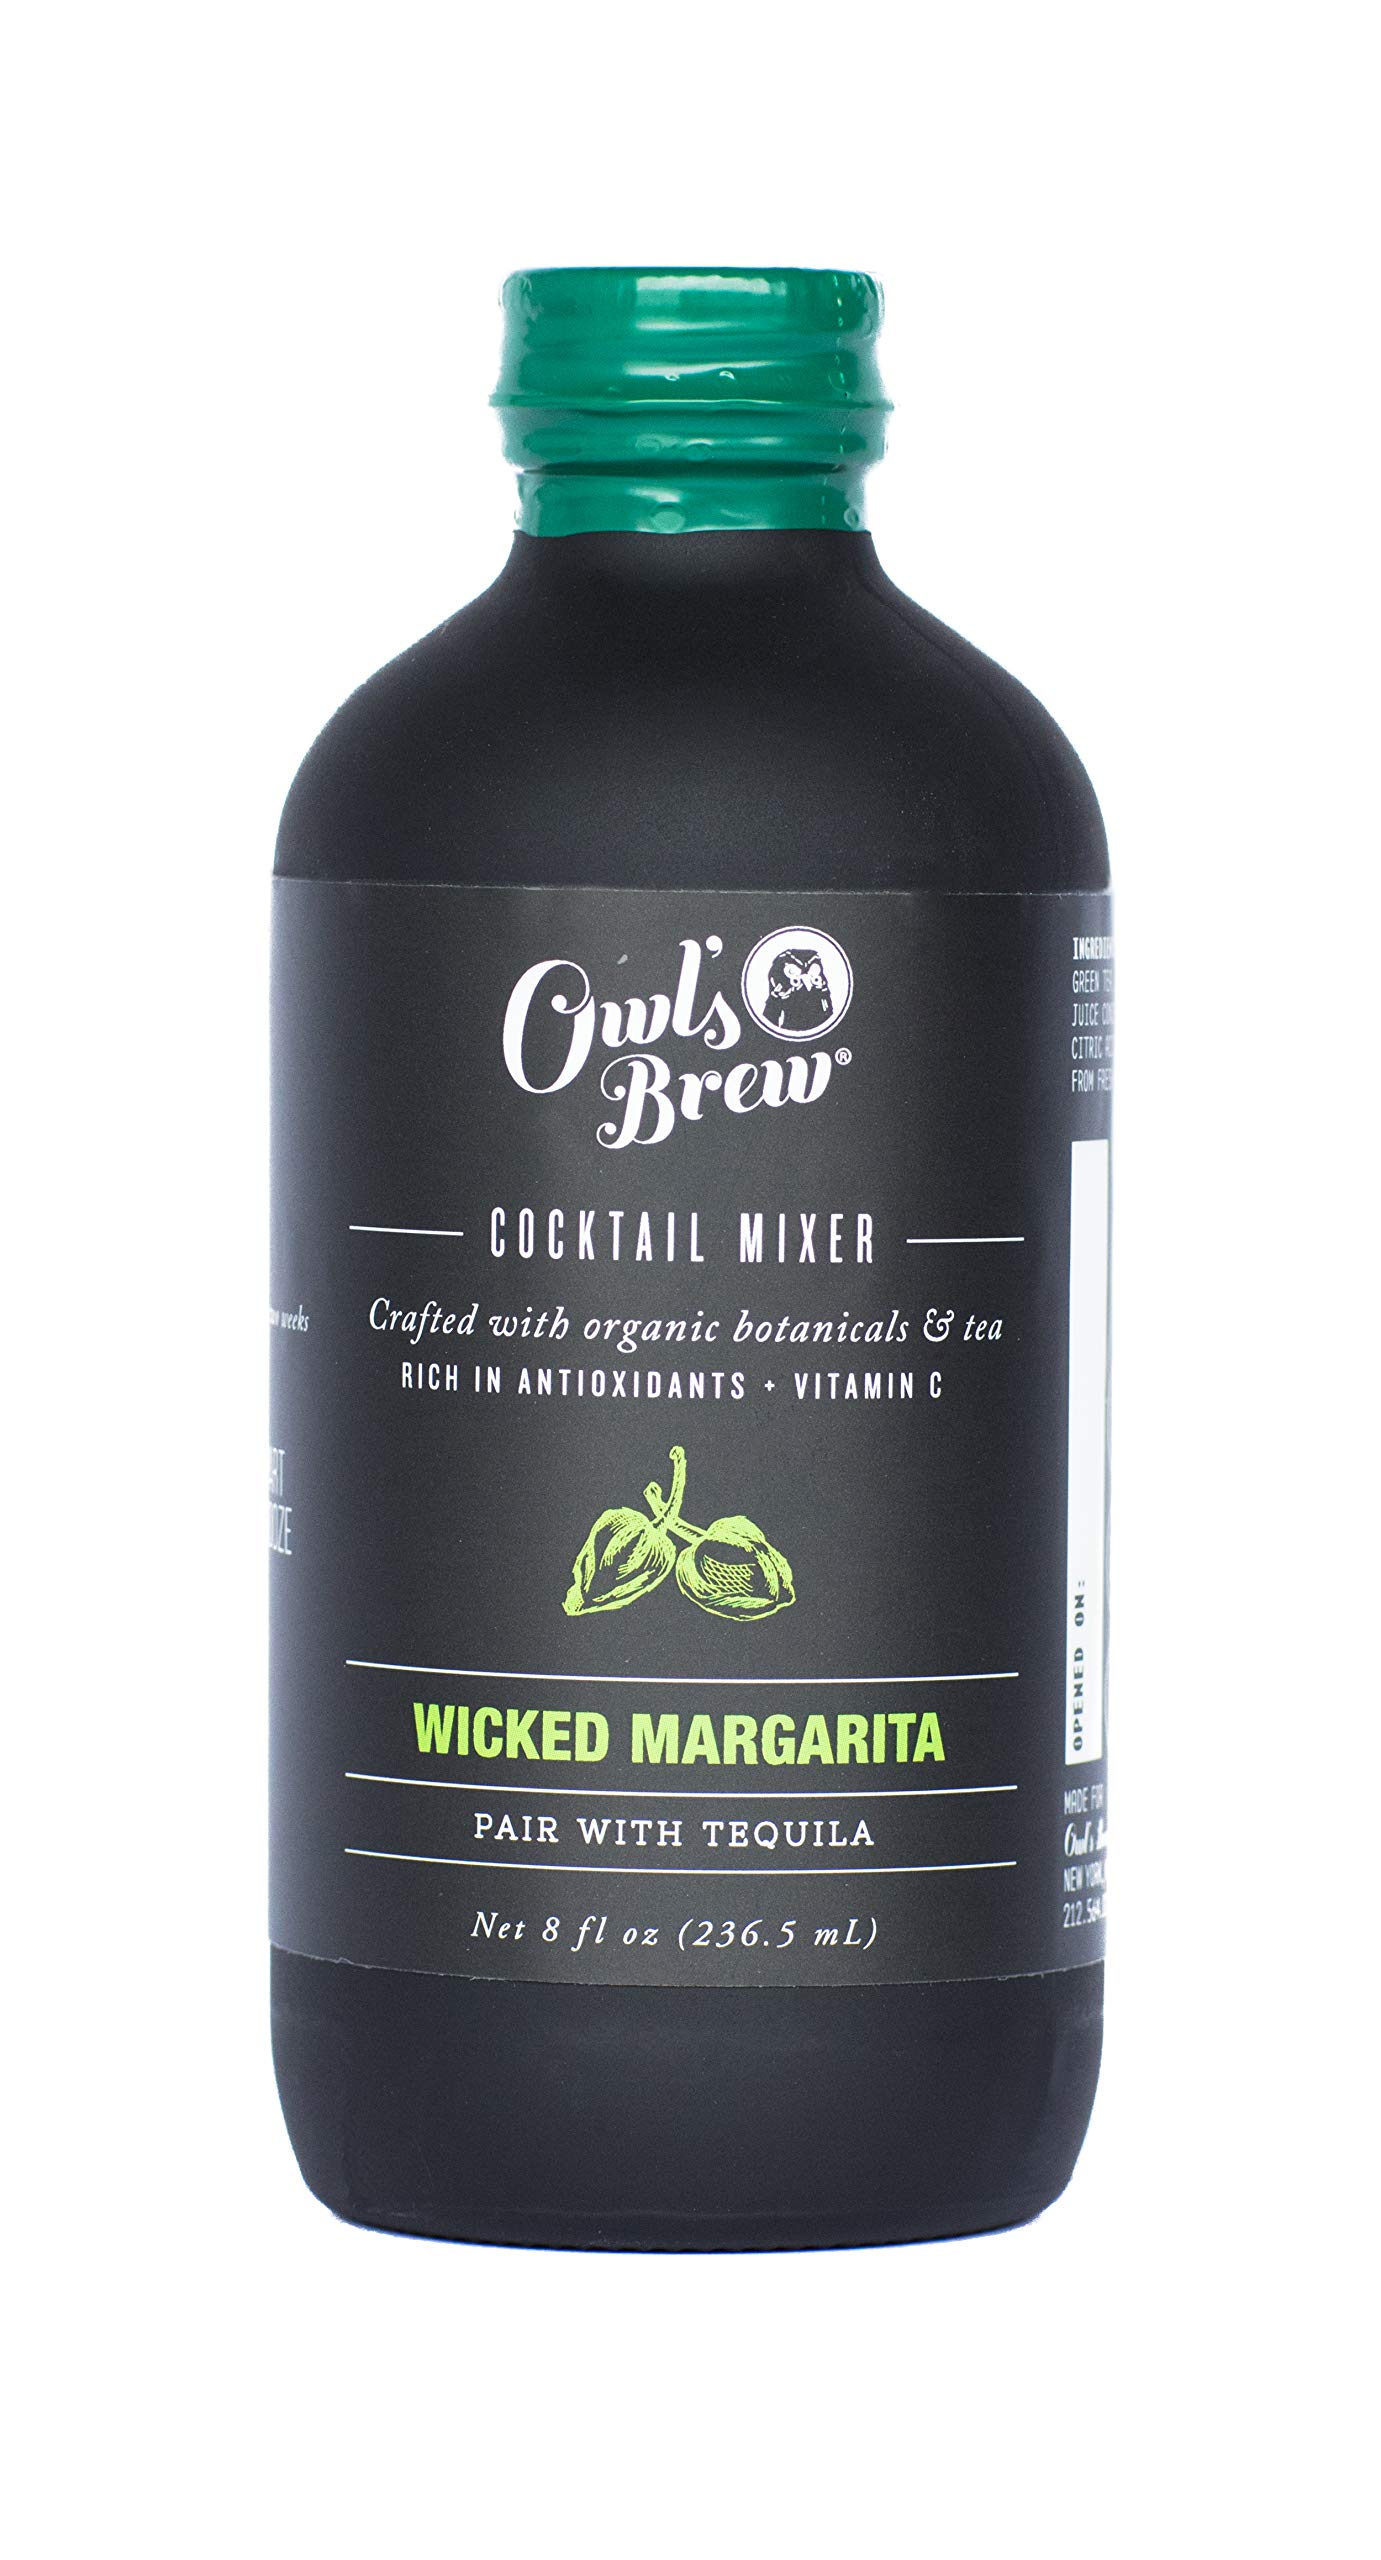 Owl's Brew Wicked Margarita Cocktail Mixer, 8 Ounce Bottle